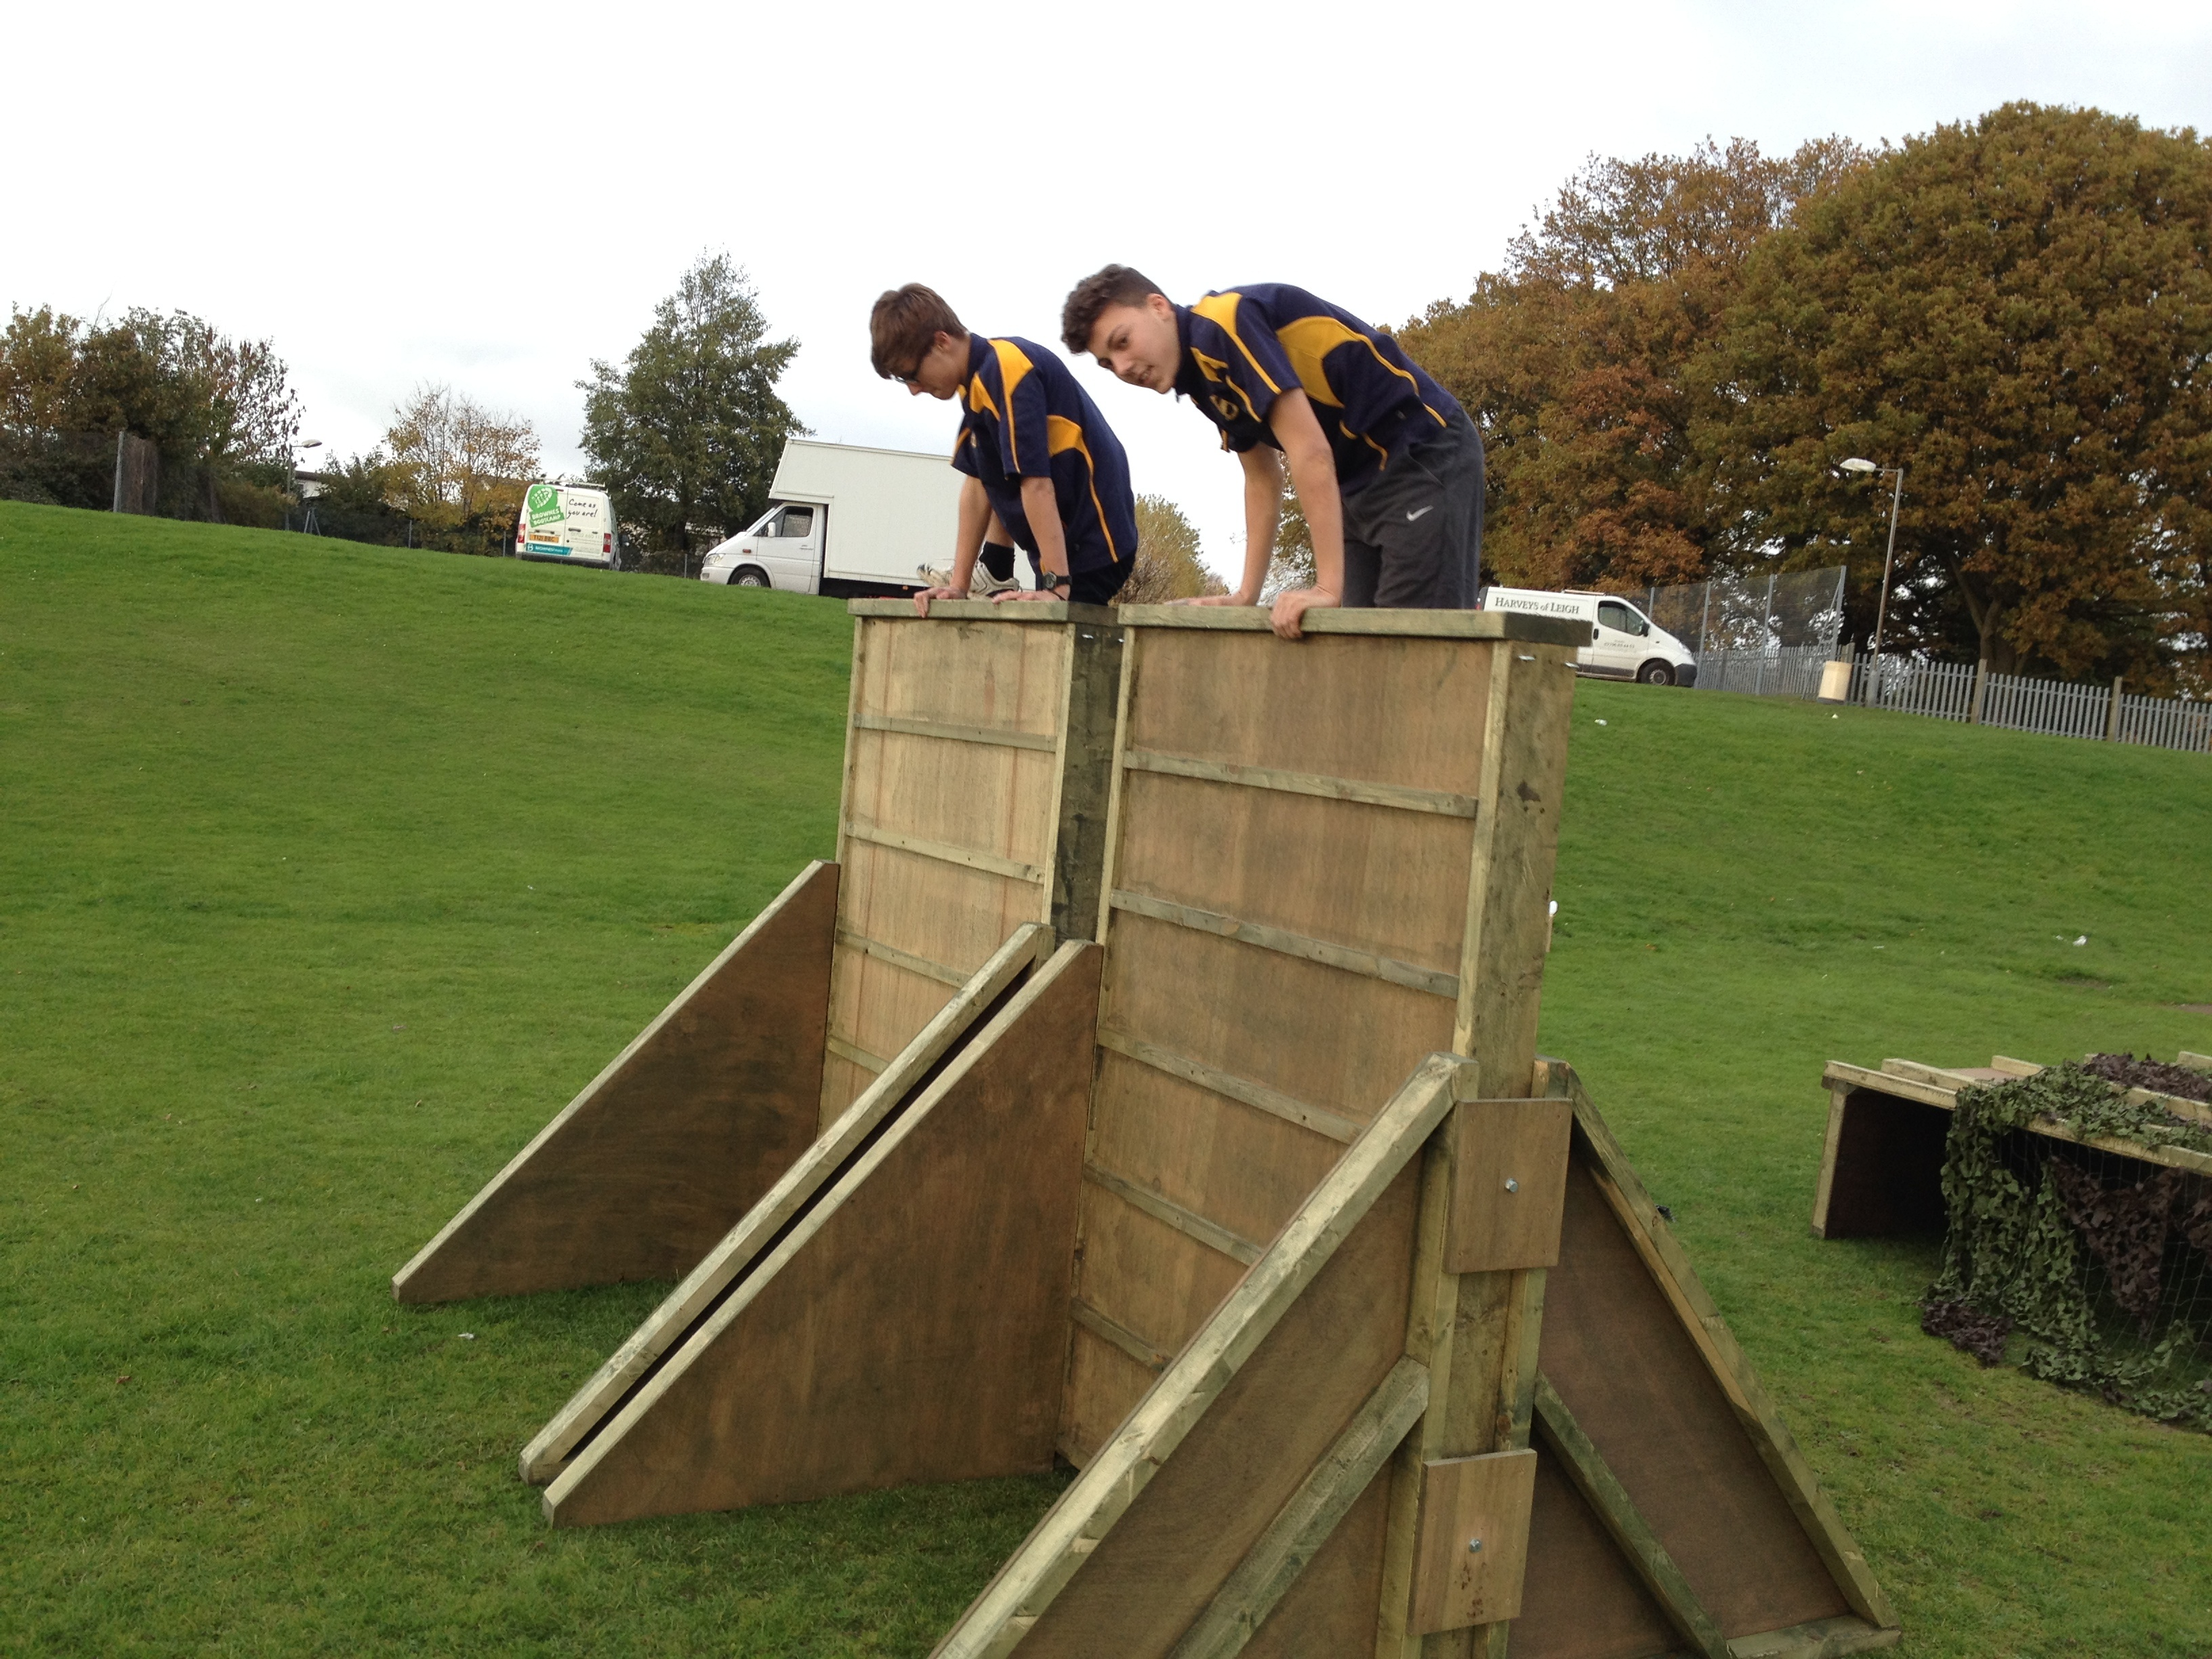 Children Climbing Cover Obstacle Course Wall